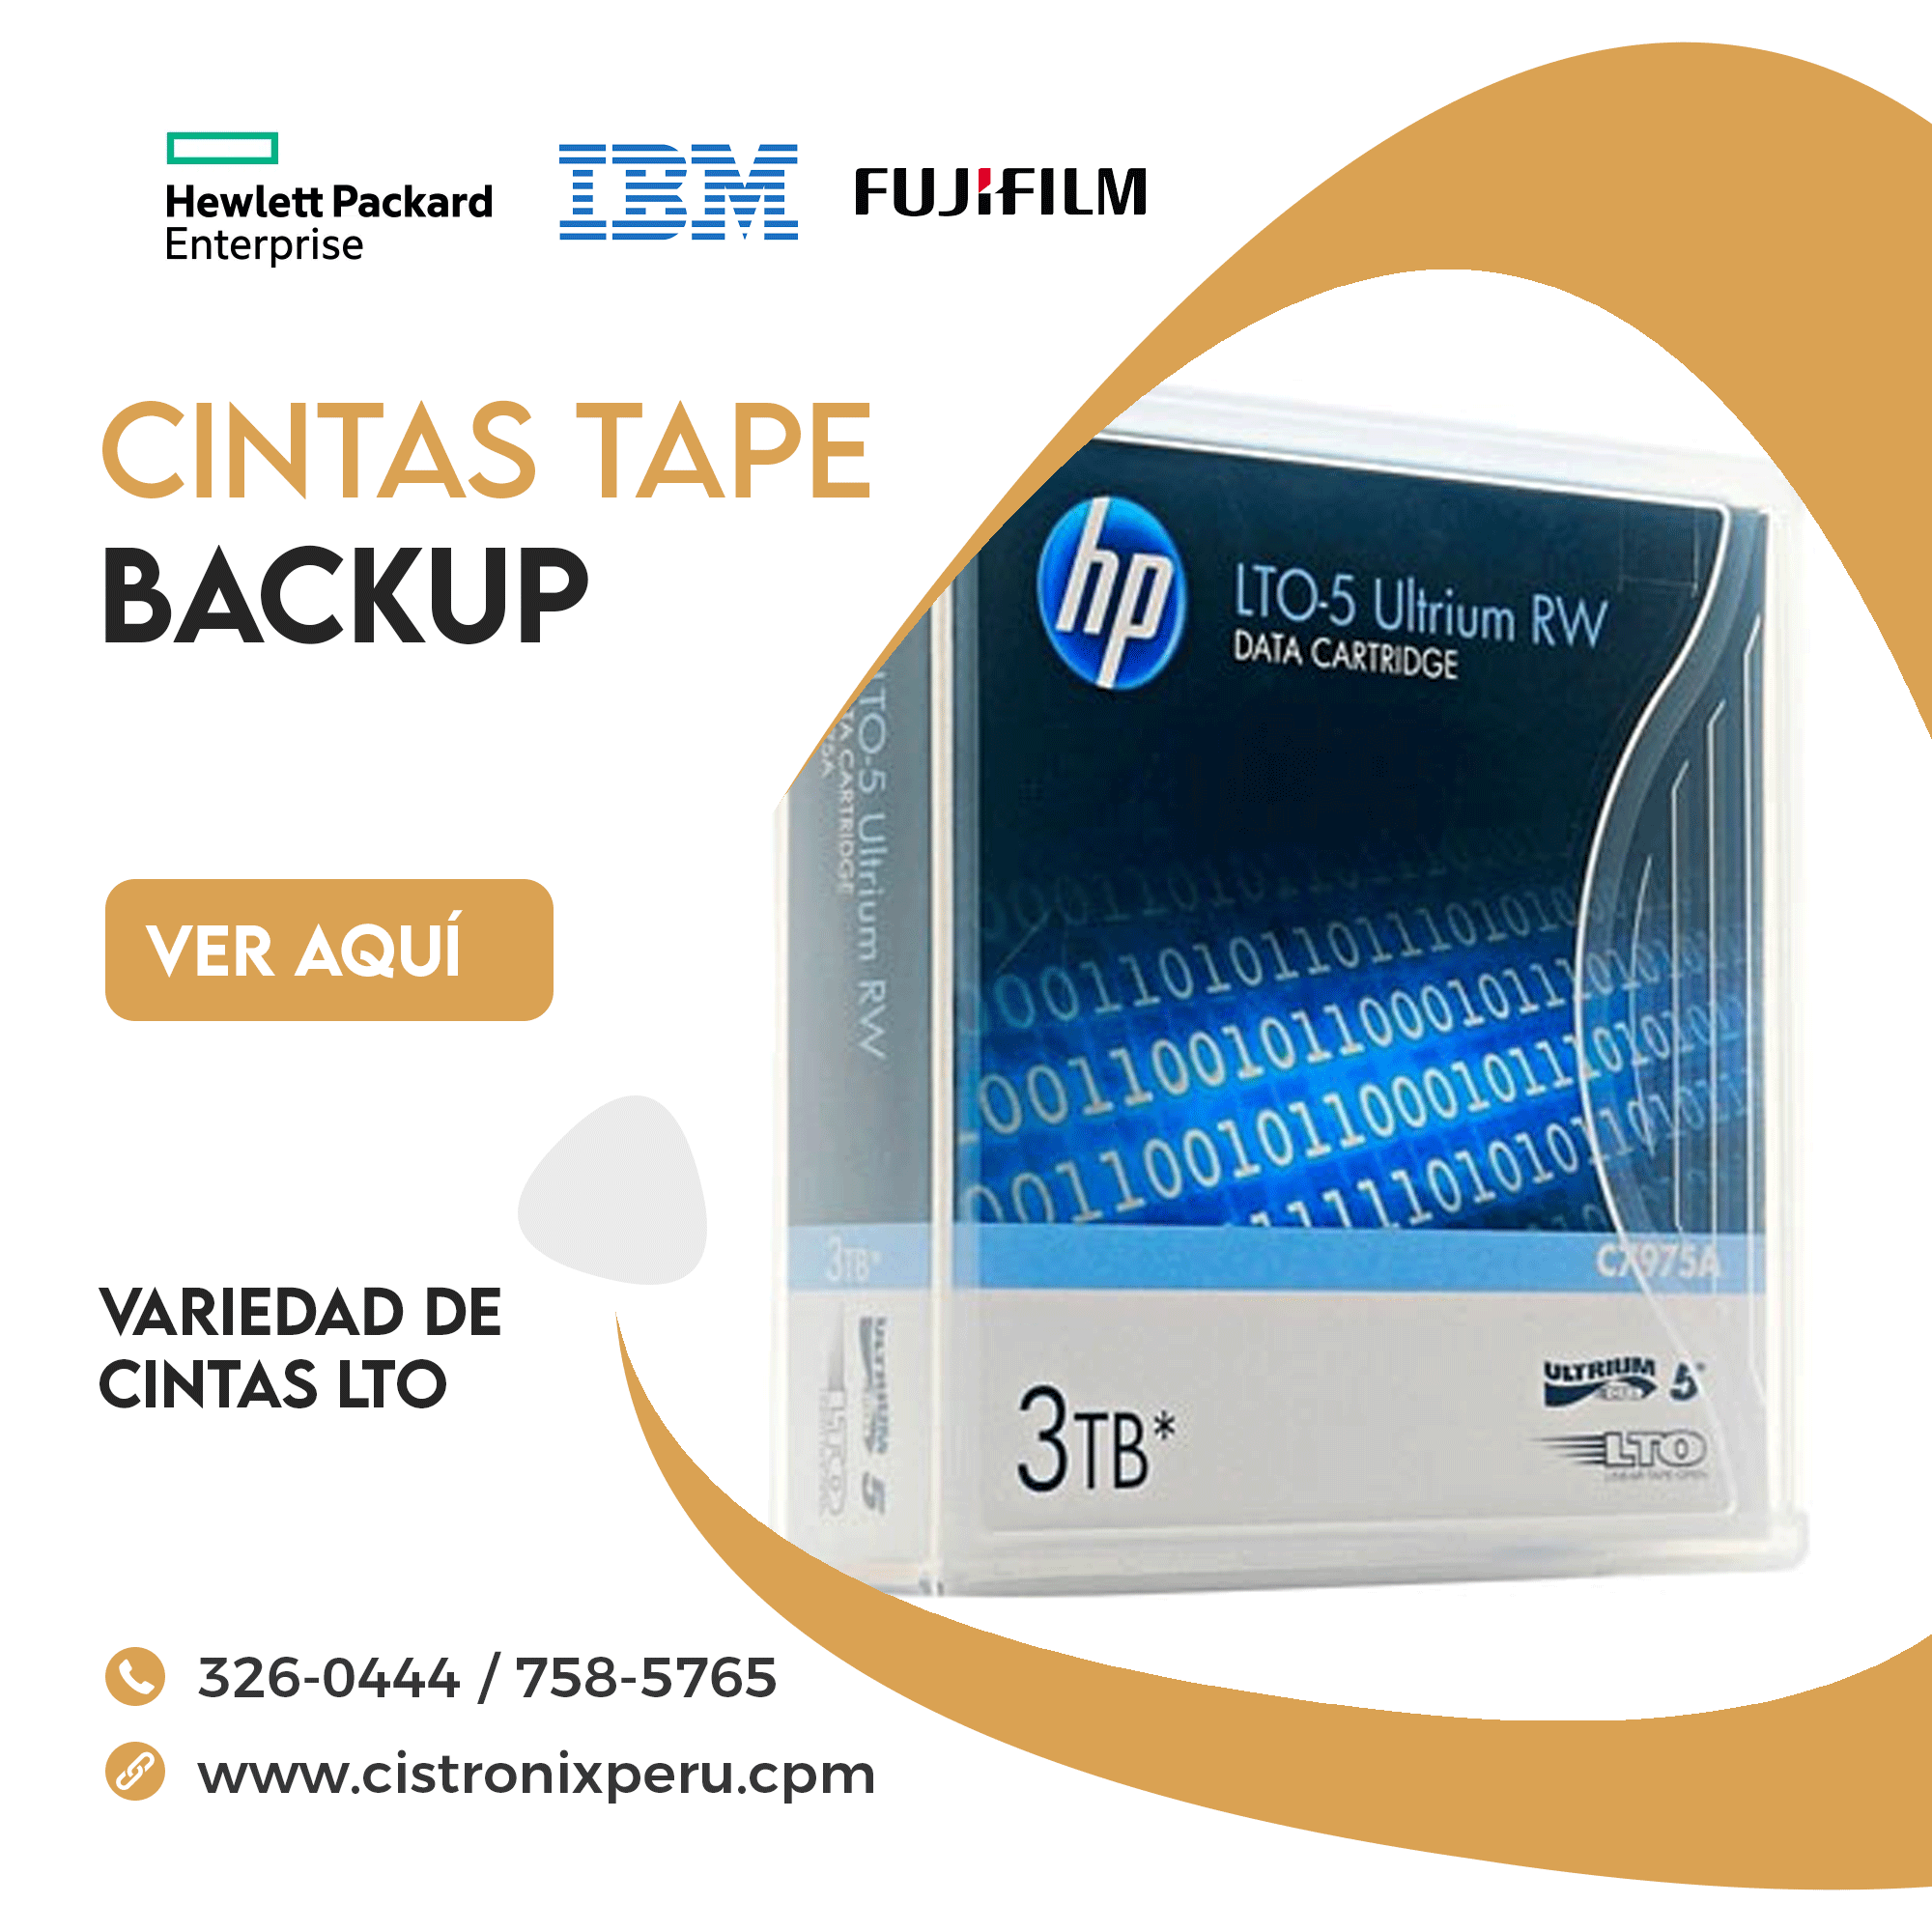 CINTAS TAPE BACKUP